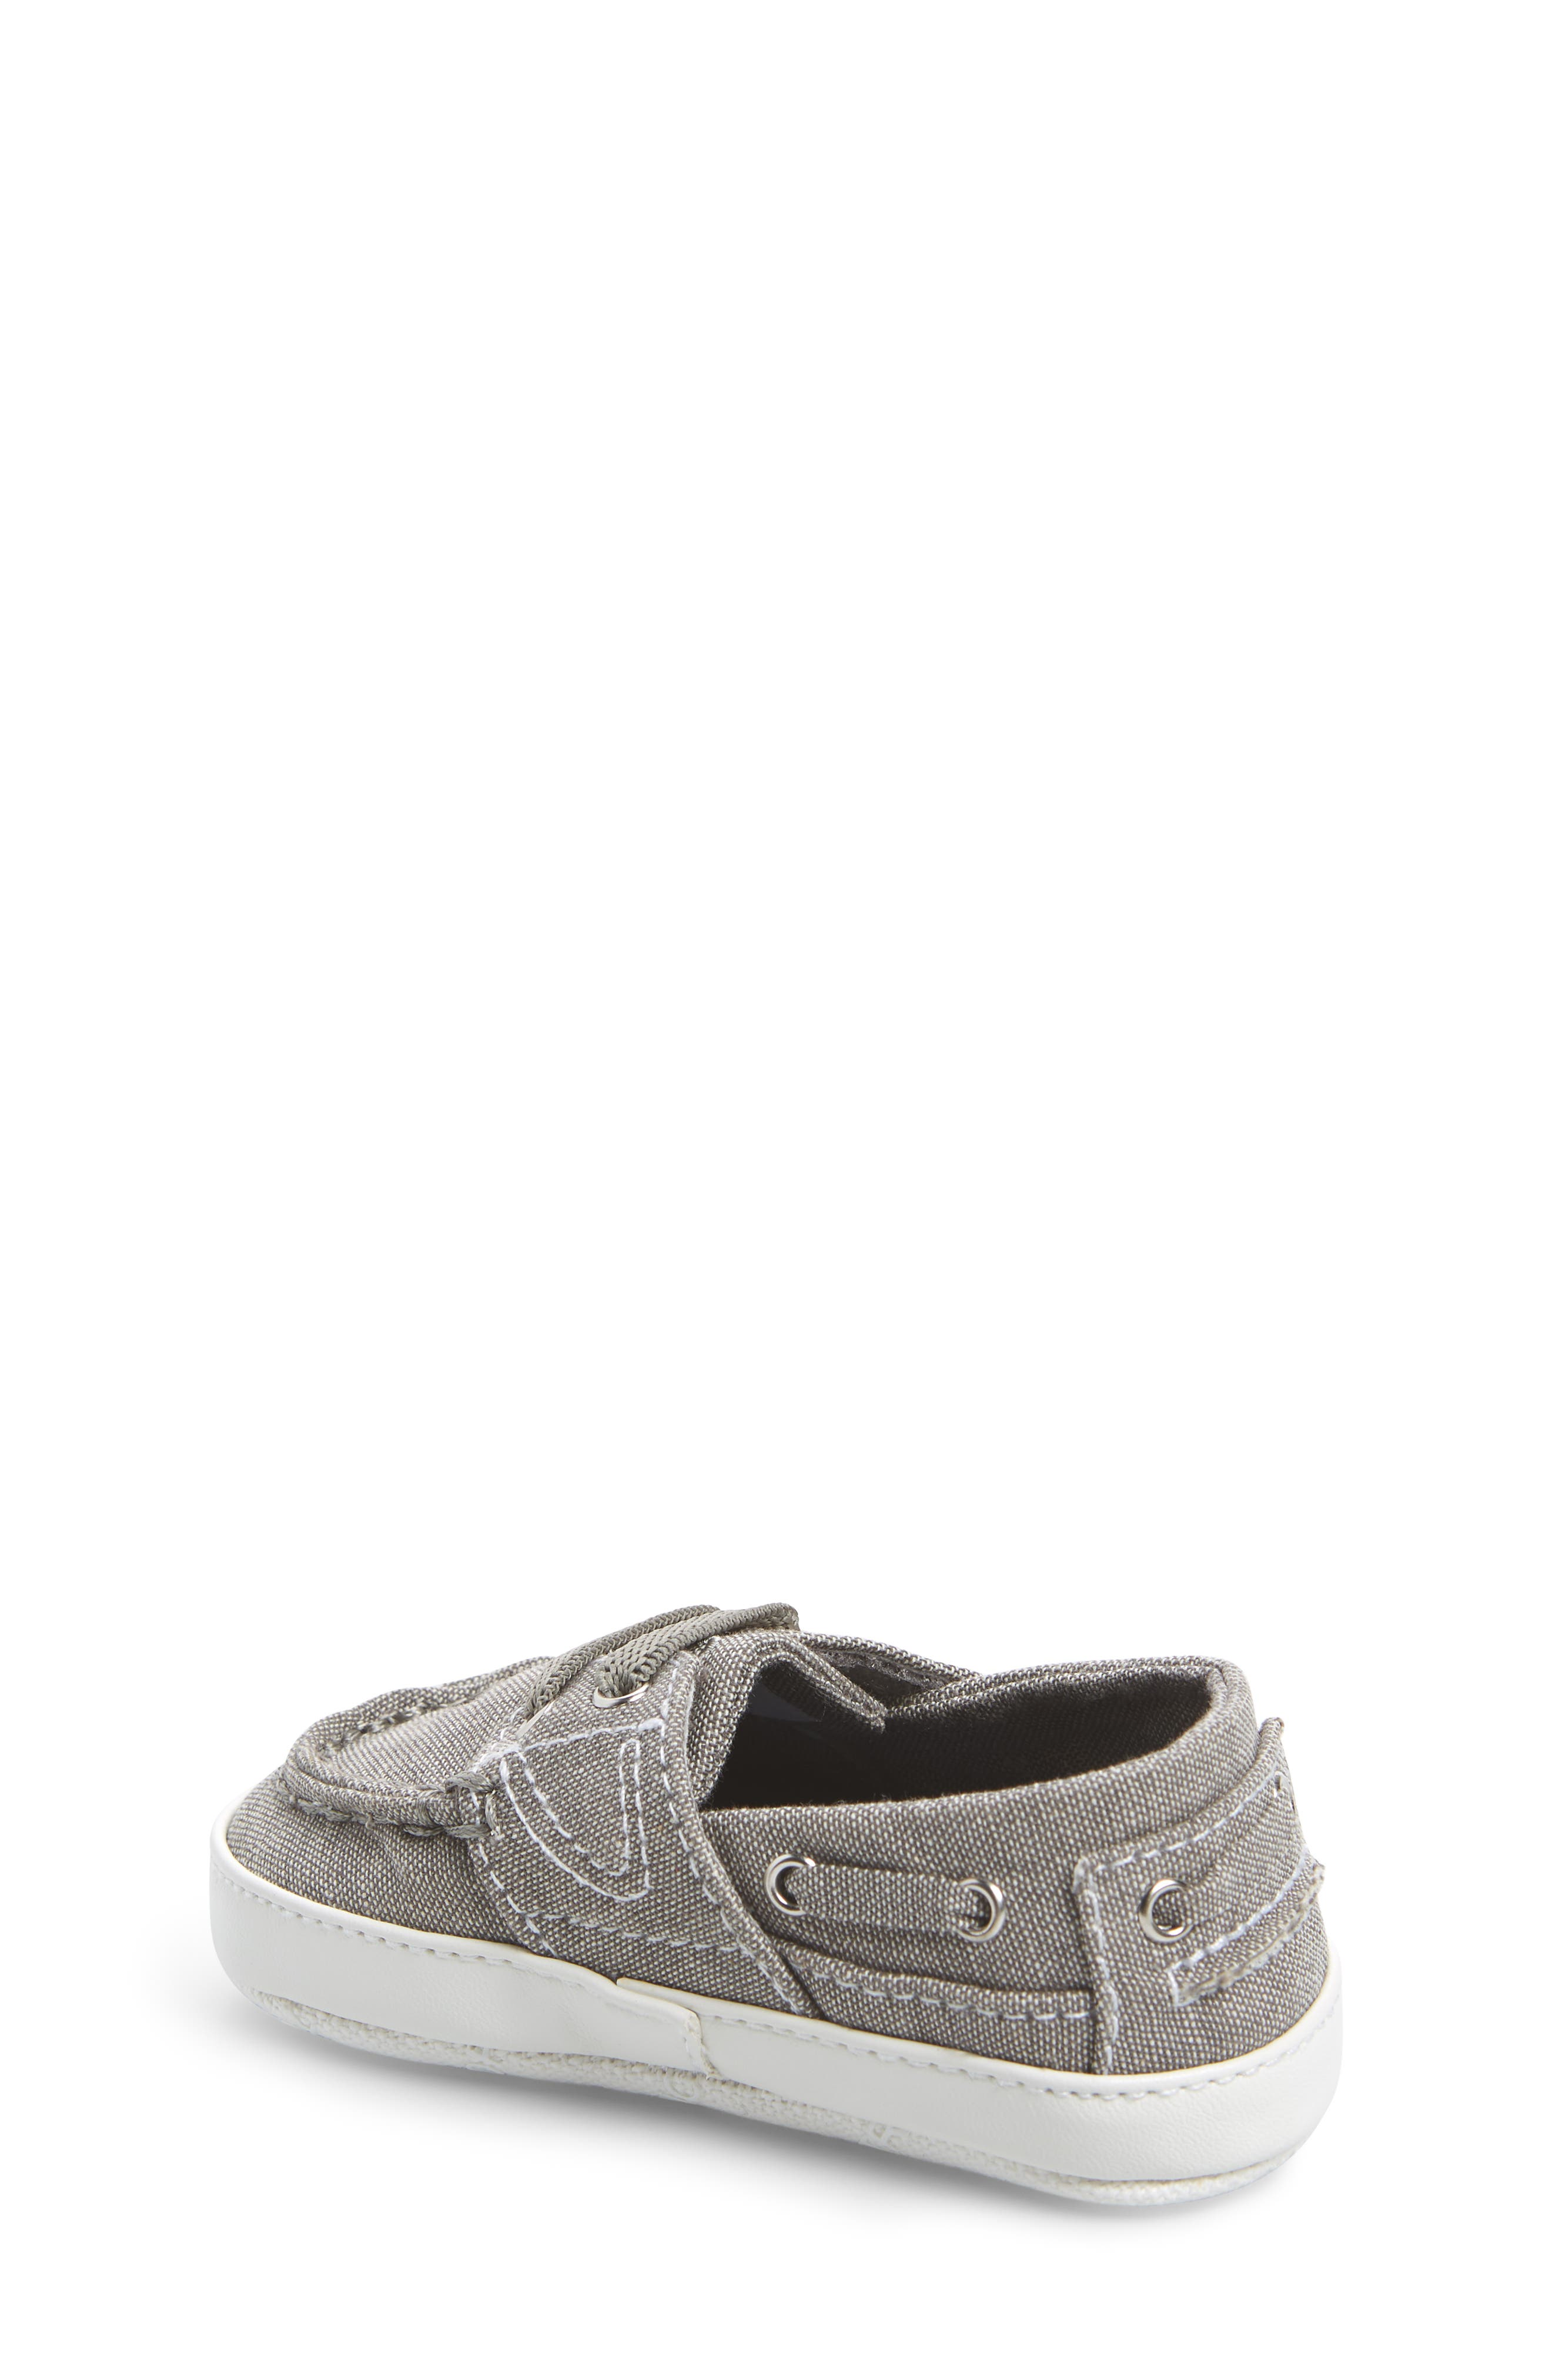 Motto Boat Crib Shoe,                             Alternate thumbnail 2, color,